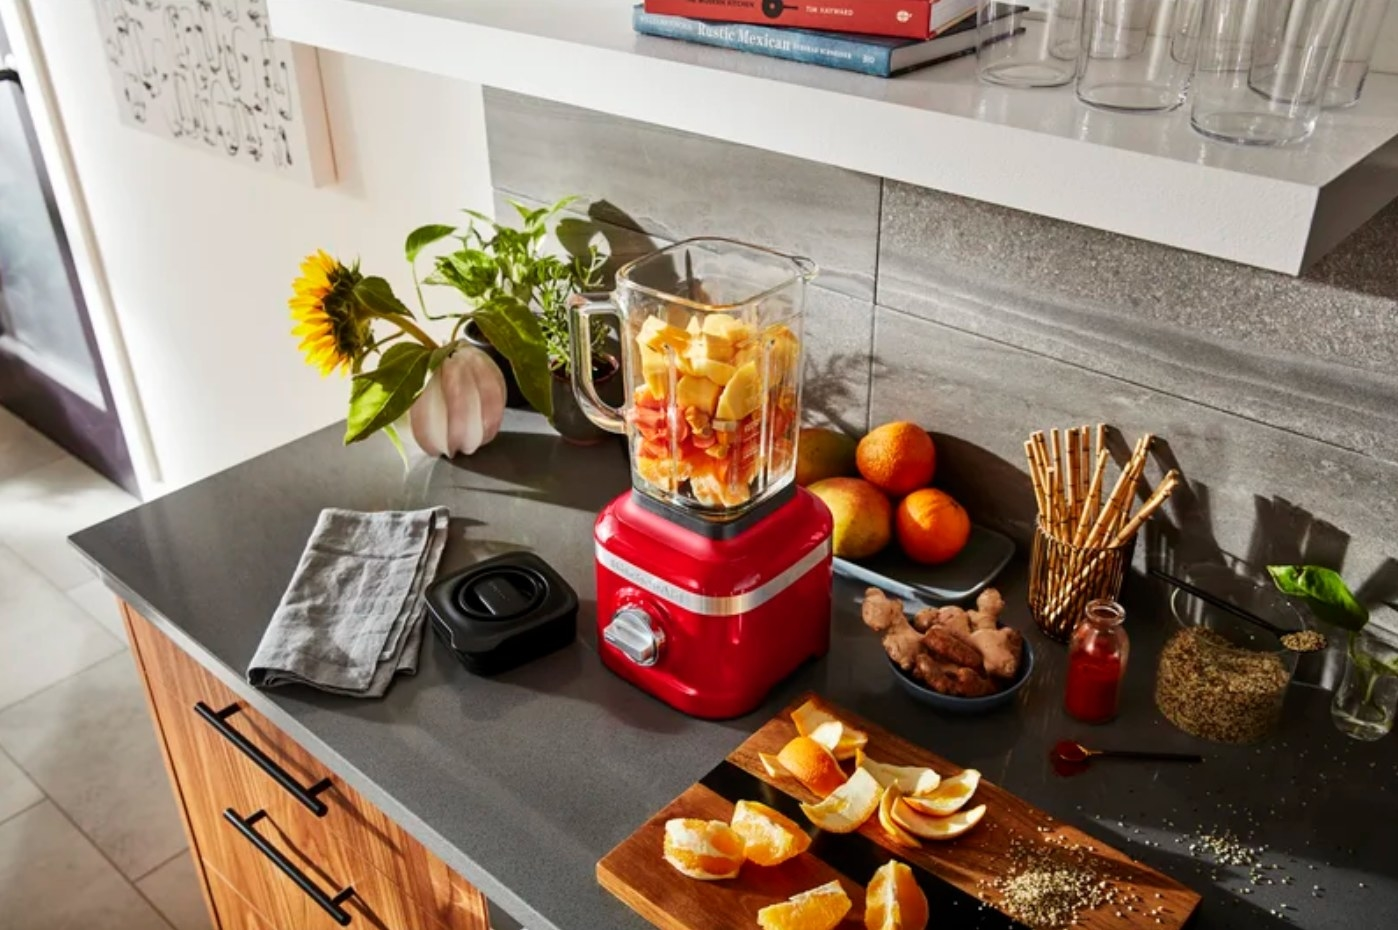 The ice crushing countertop blender in passion red